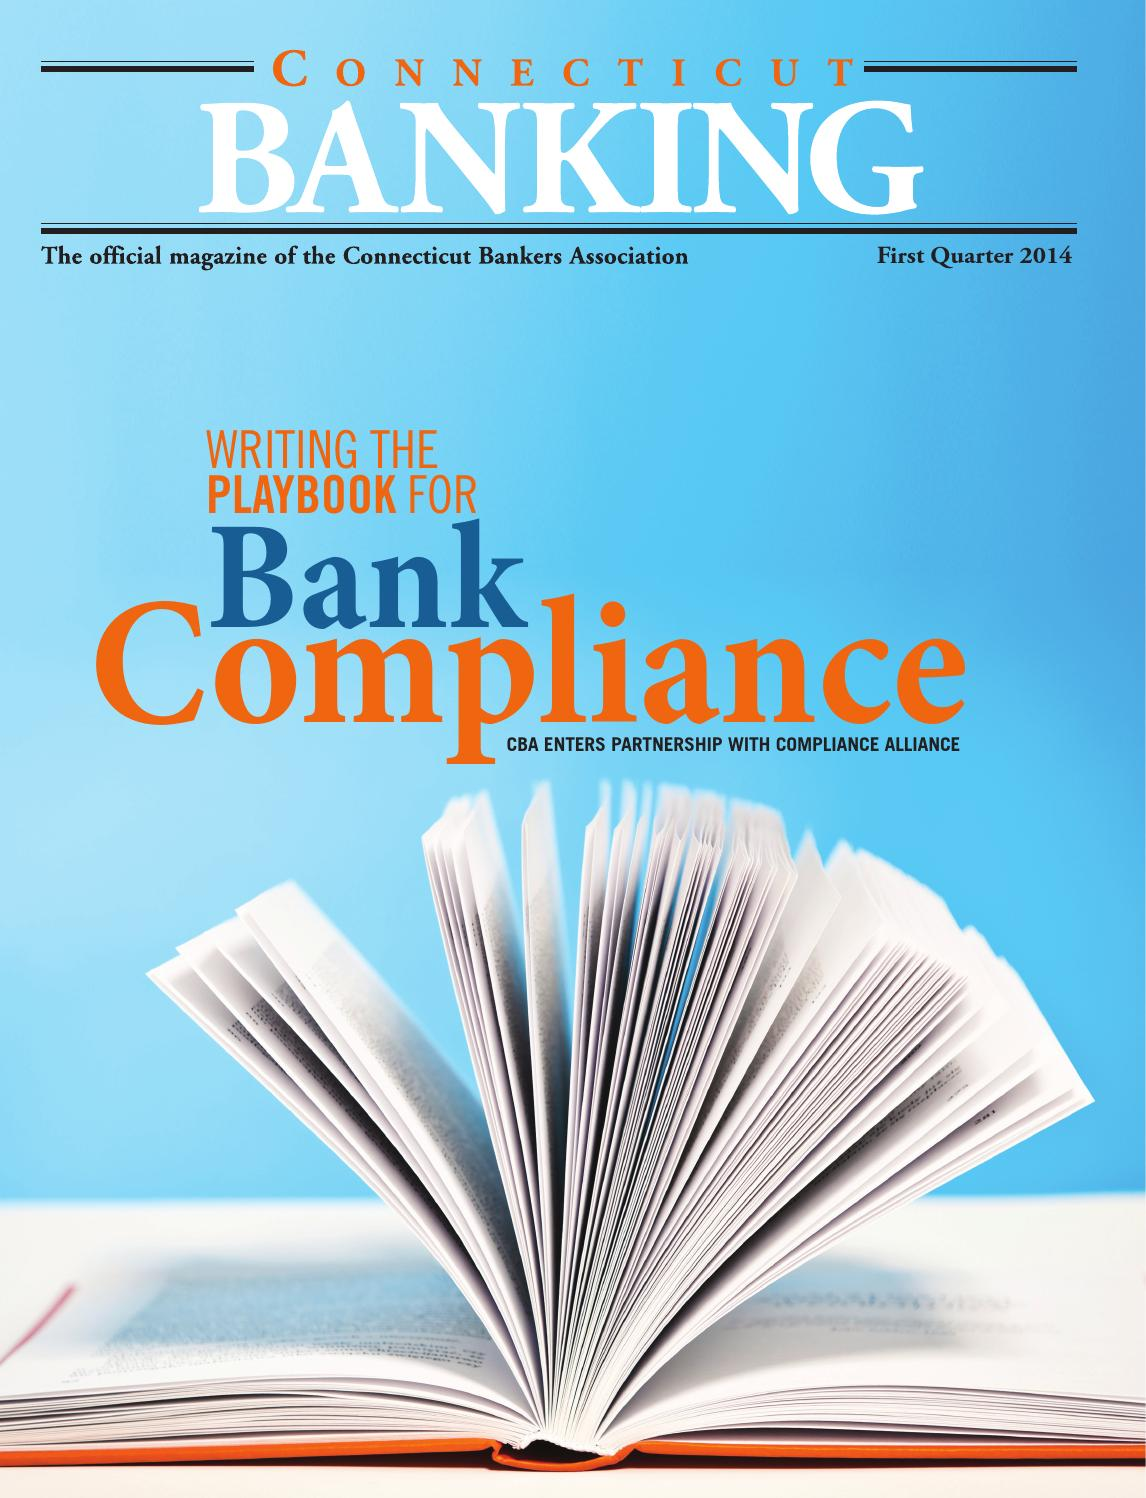 Connecticut Banking 1Q 2014 by The Warren Group - issuu